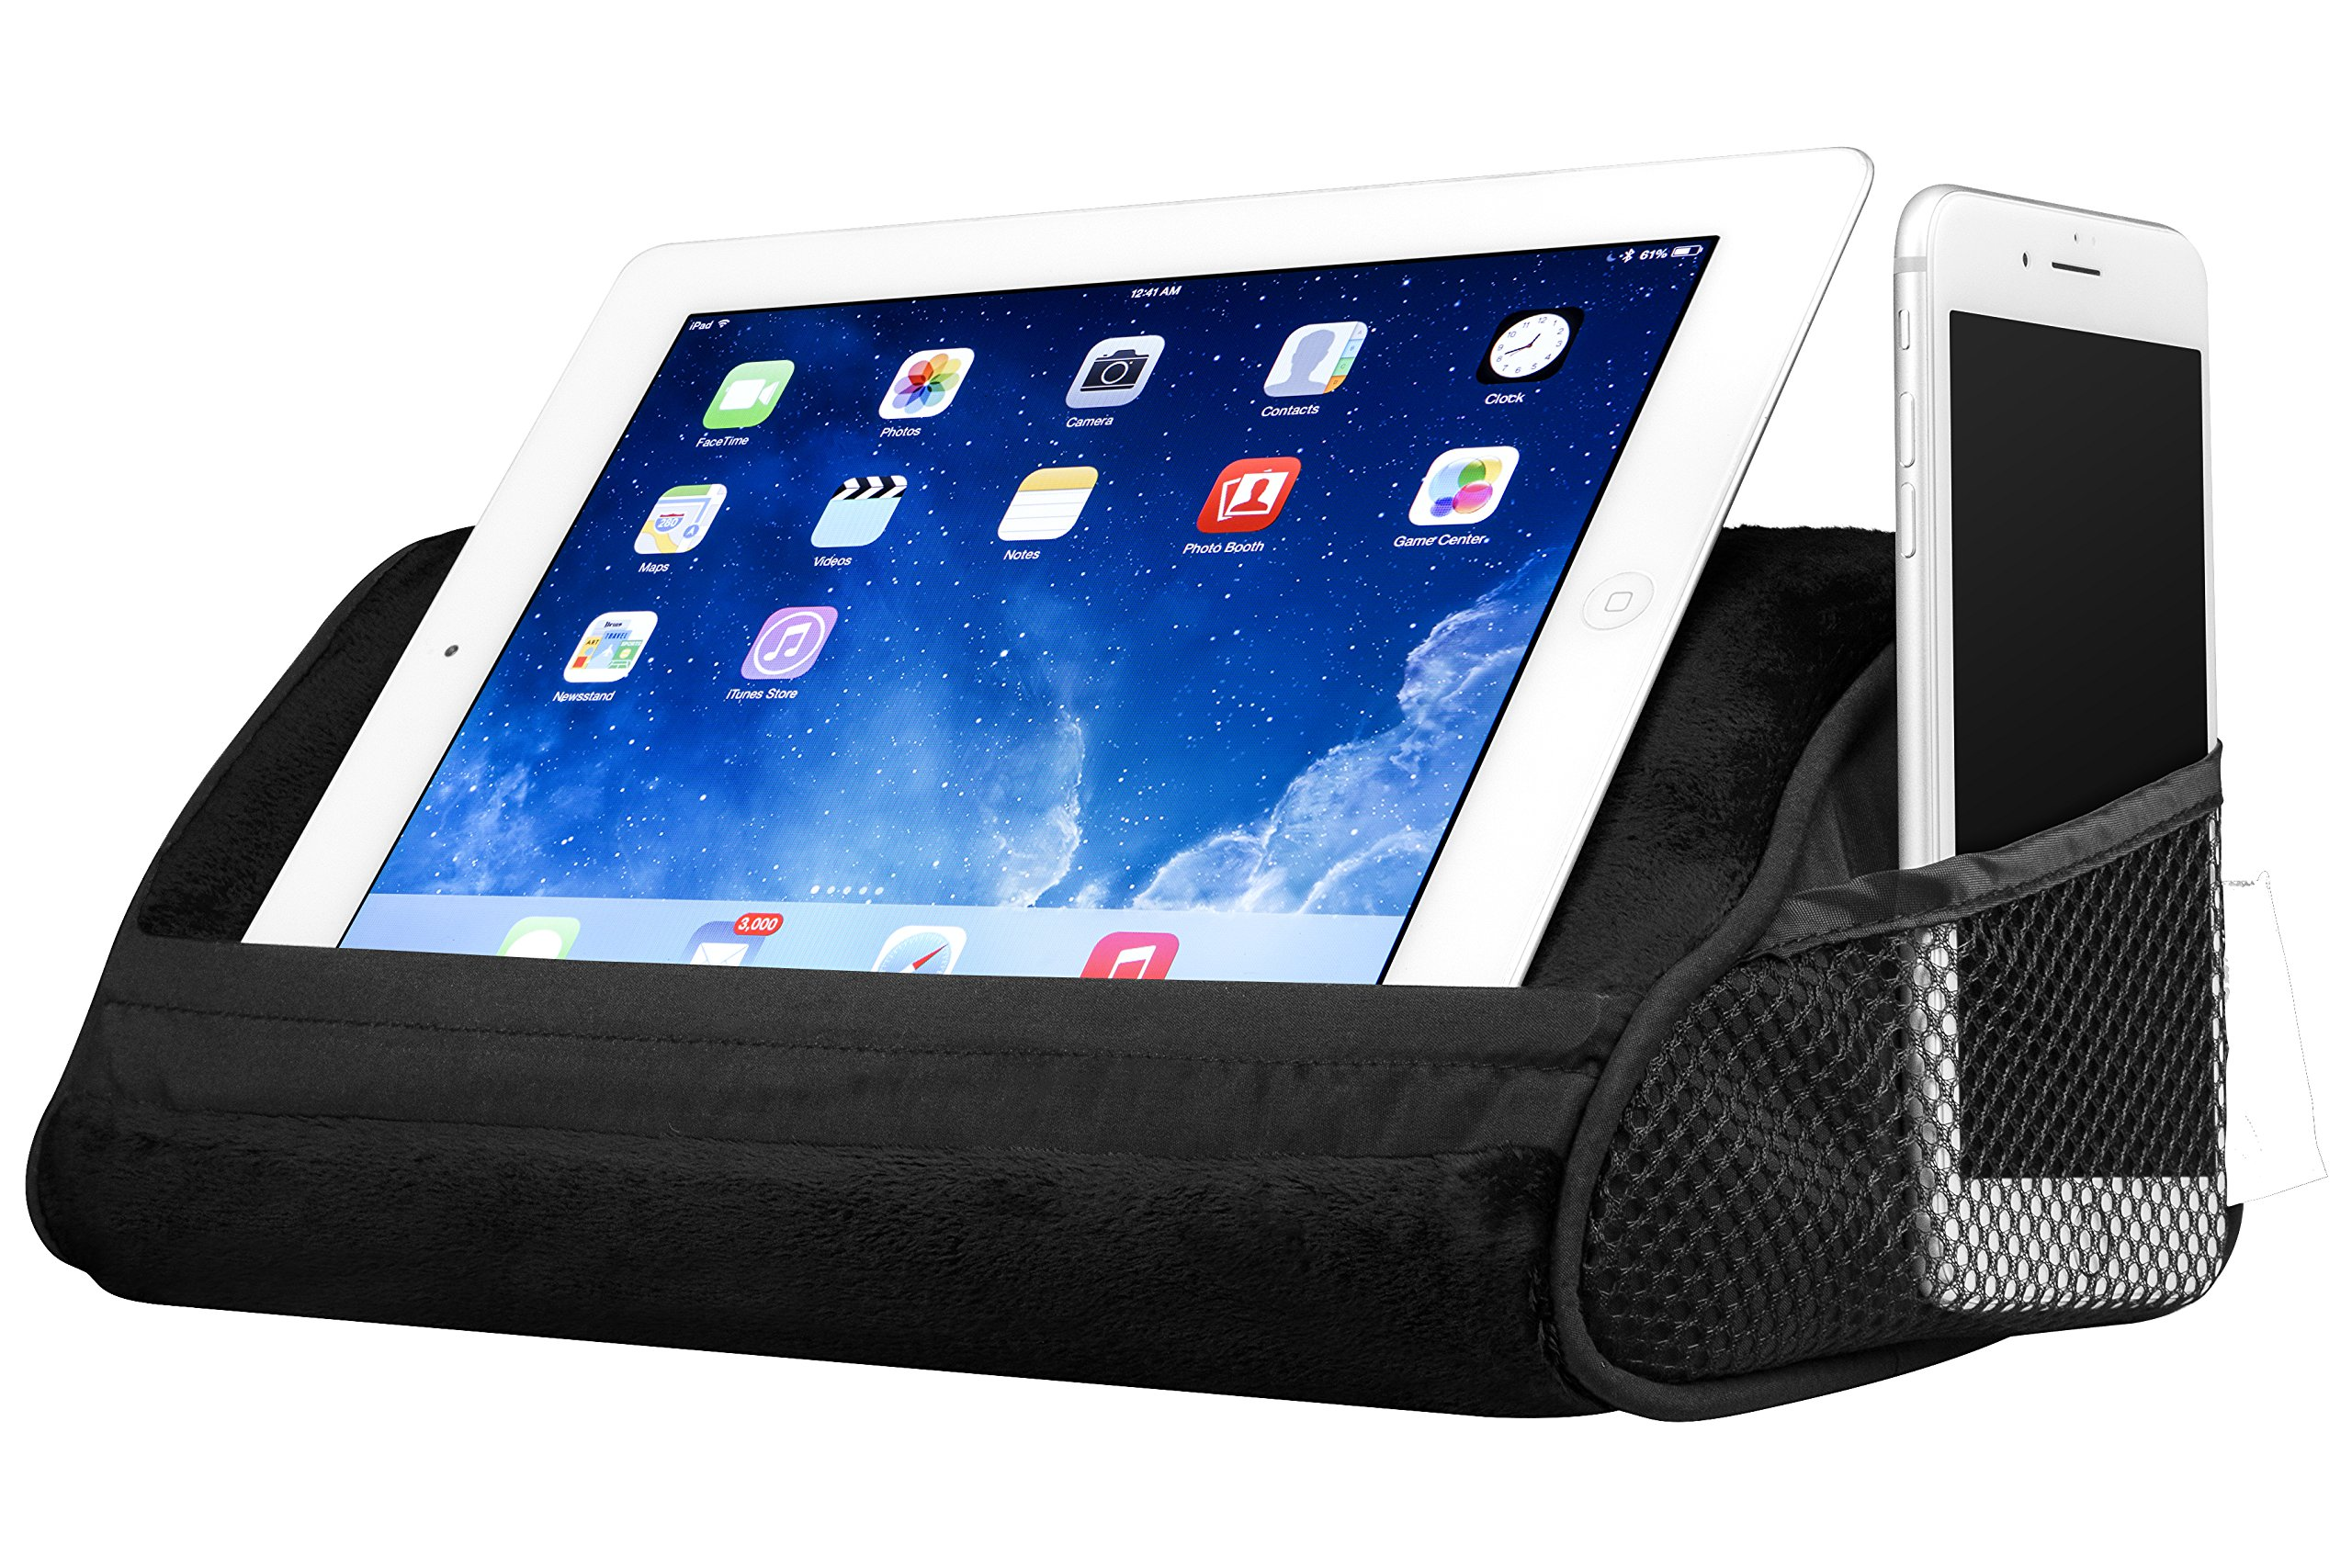 LapGear Travel Tablet Pillow, Tablet Stand - Black (Fits upto 10.5'' Tablet) by Lap Desk